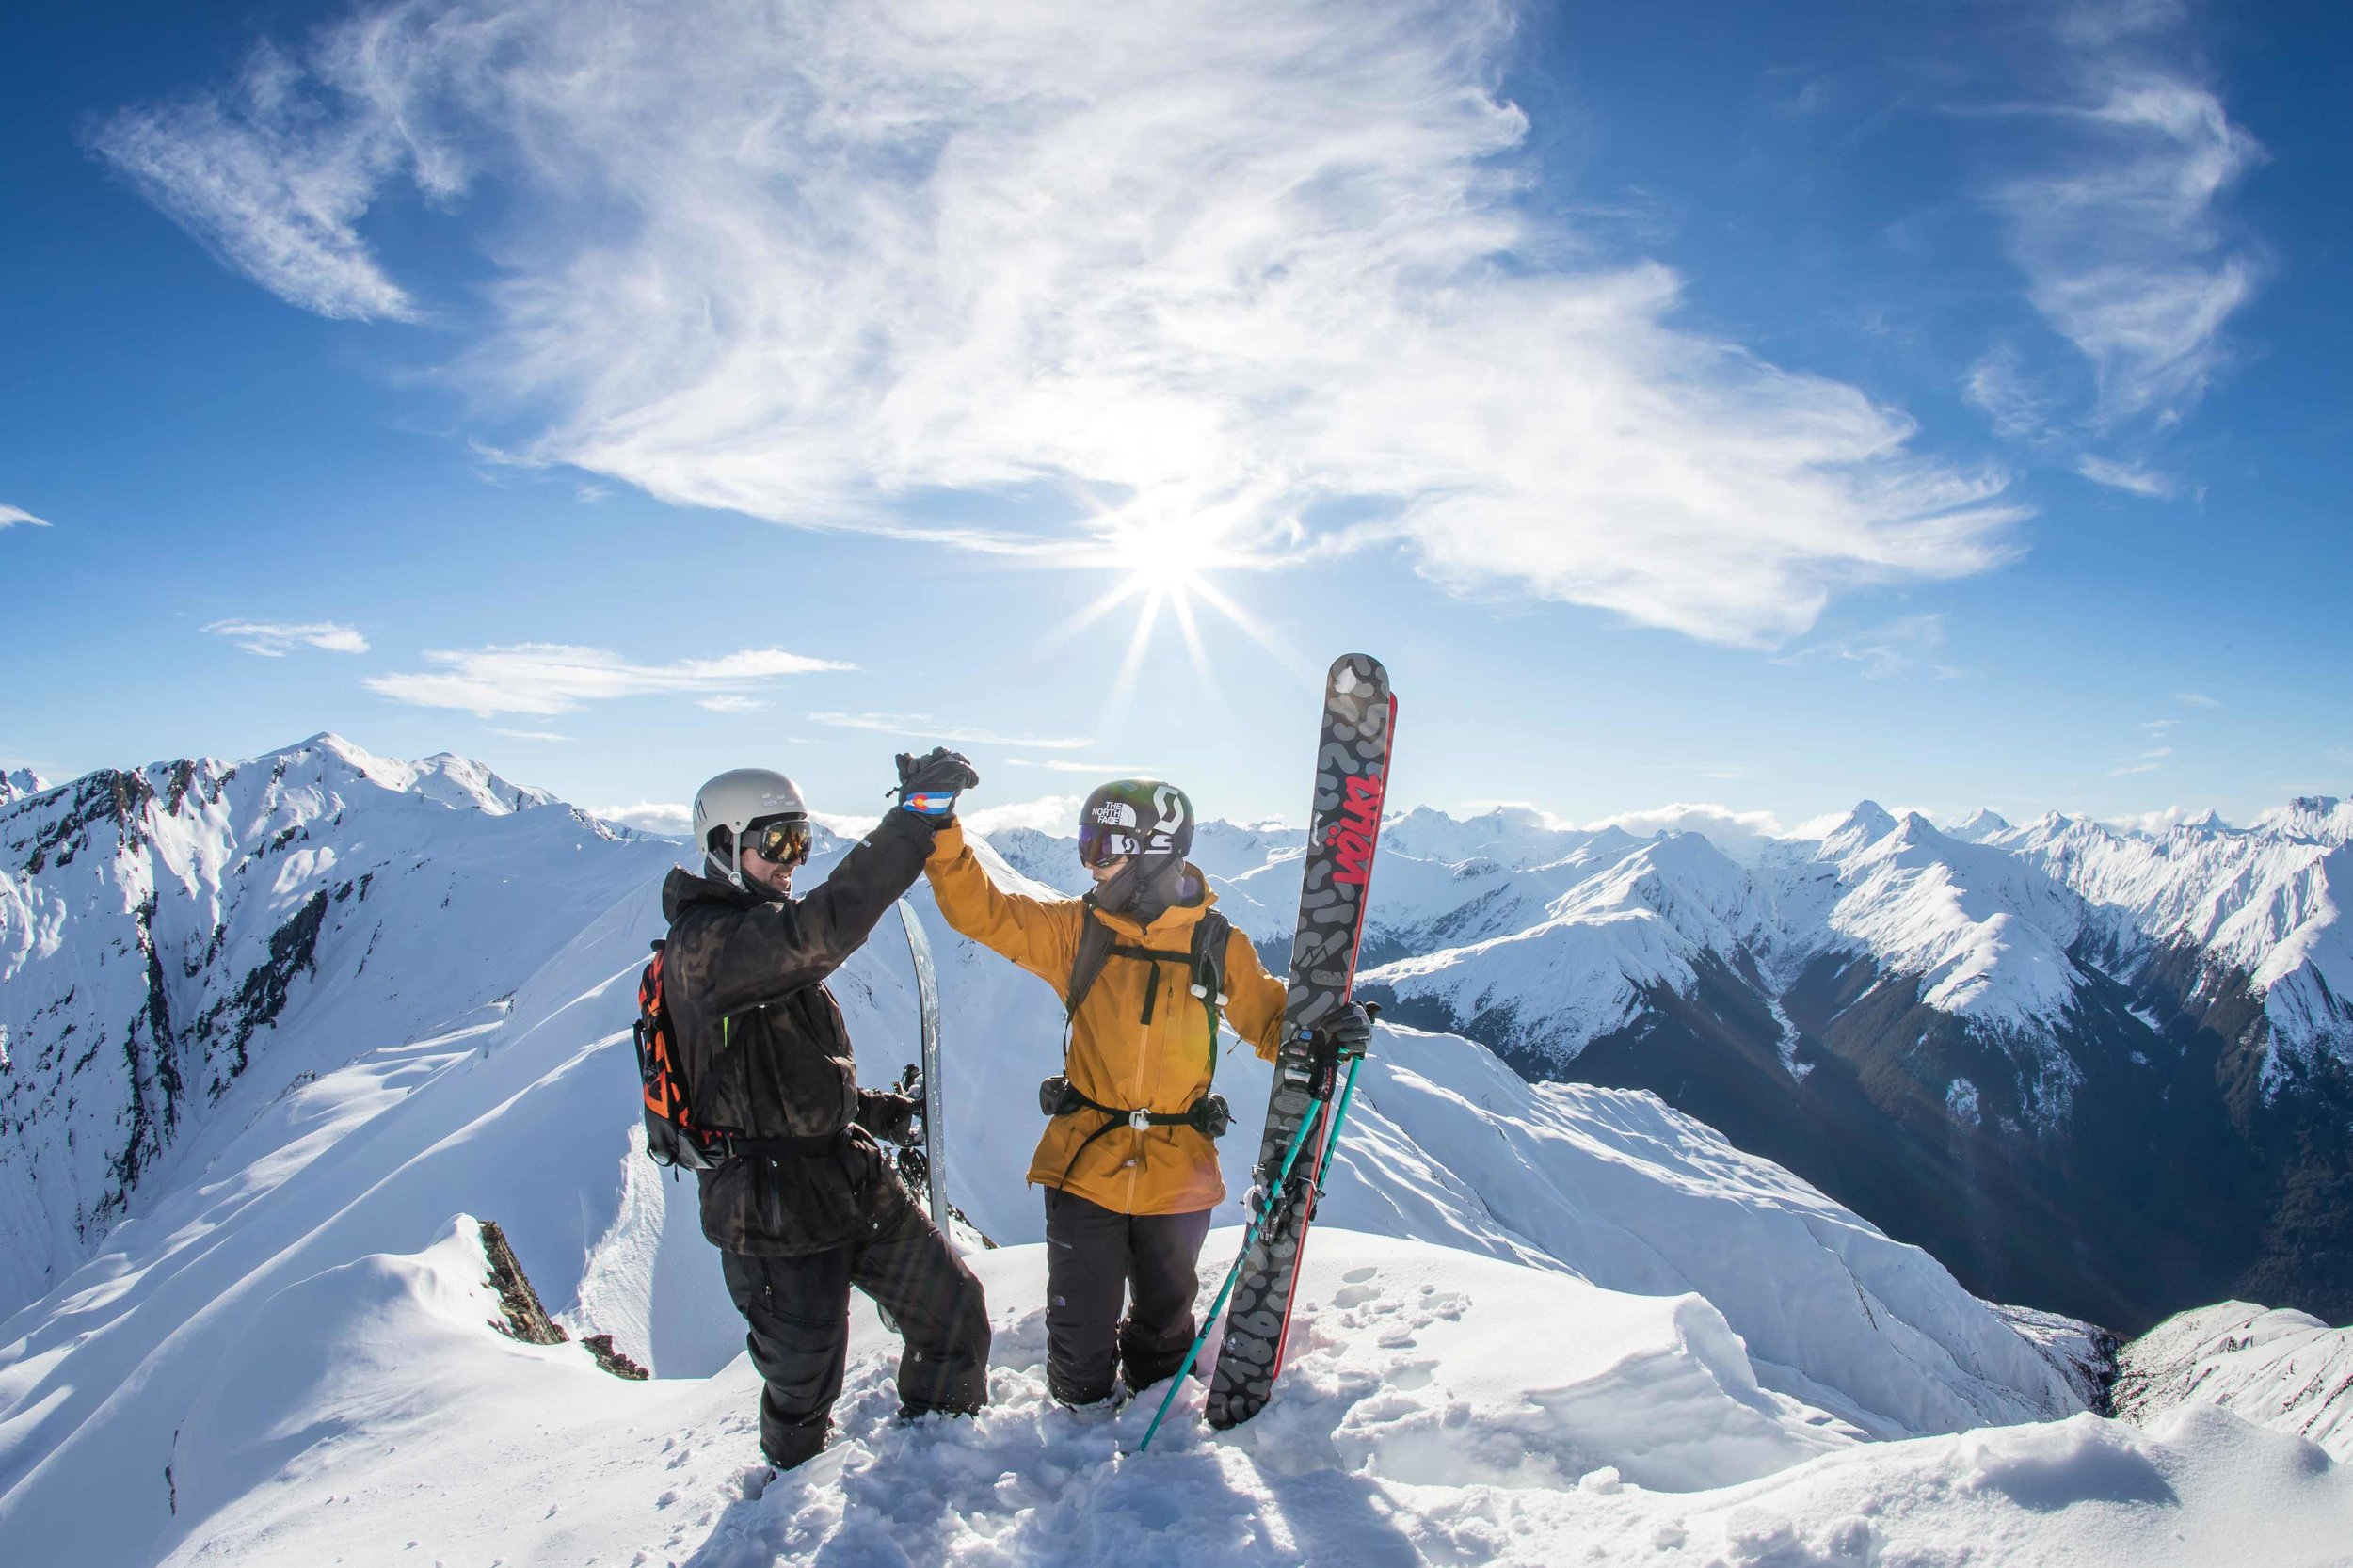 3 Run Day | $975 - Whet your appetite for powder with the perfect introduction to the heliski experience. Suitable for all skiers and snowboarders of intermediate level.